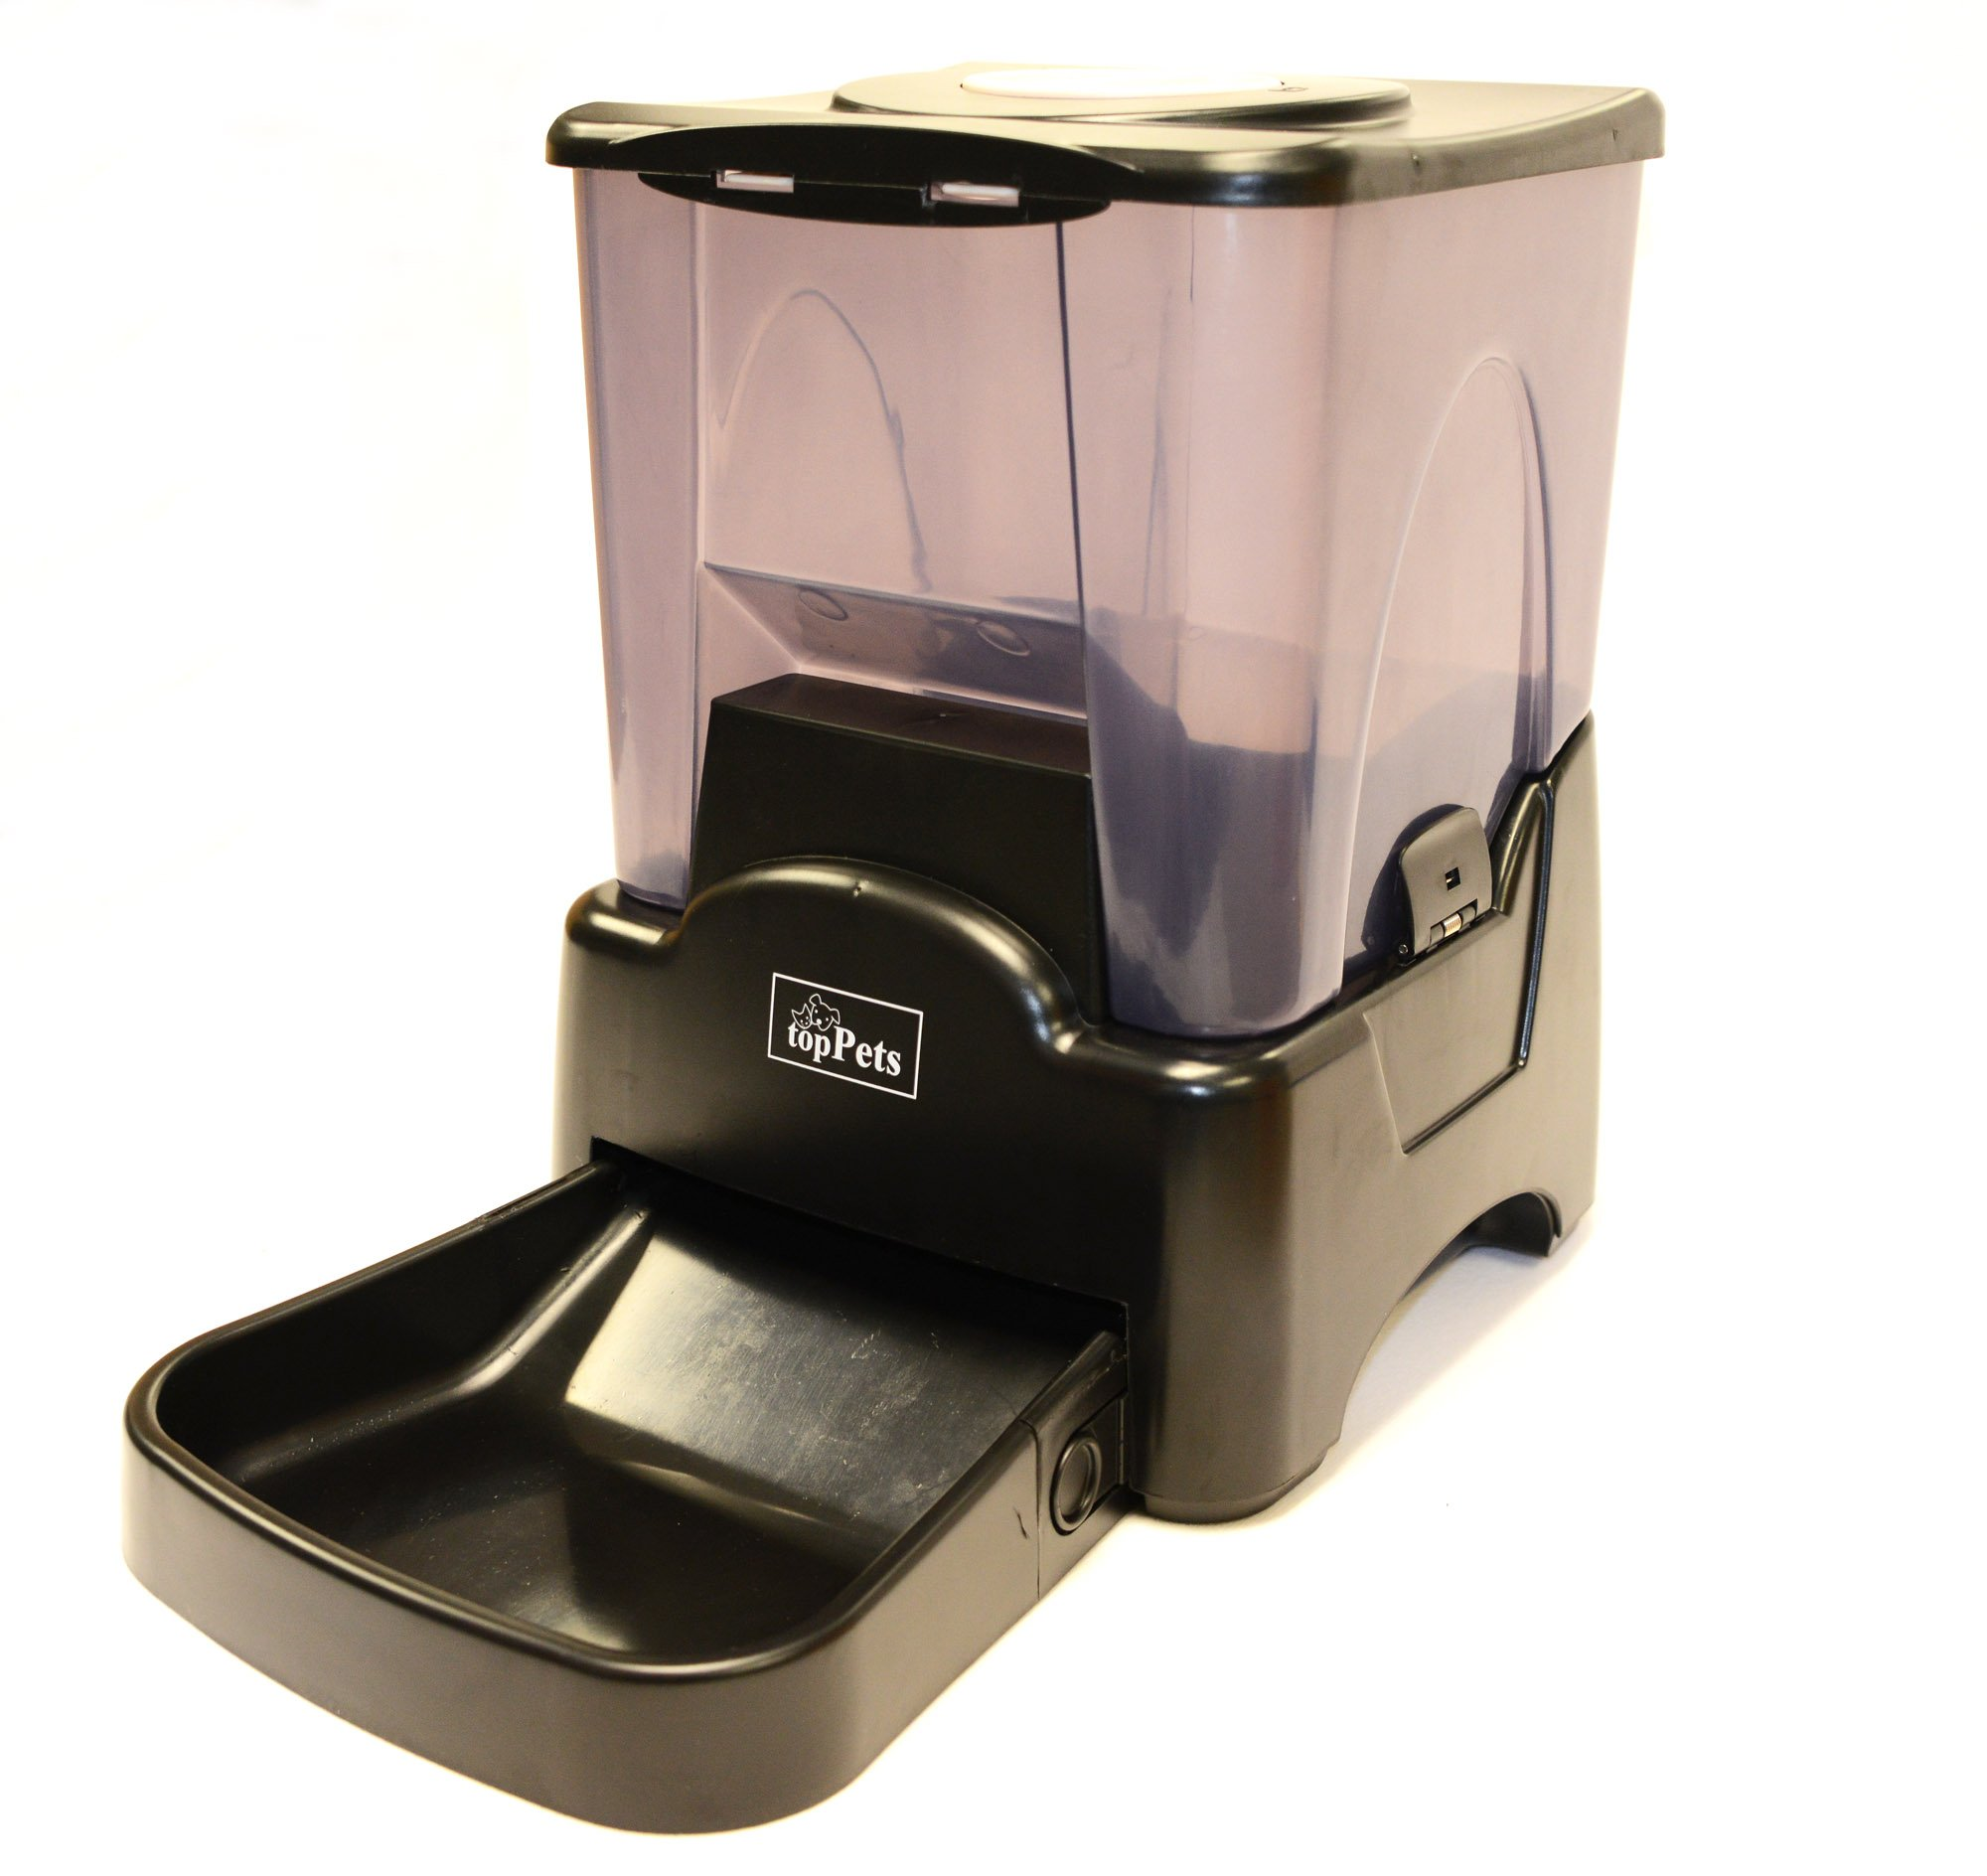 topPets Large Automatic Pet Feeder Electronic Programmable Portion Control Dog Cat Feeder w/LCD display